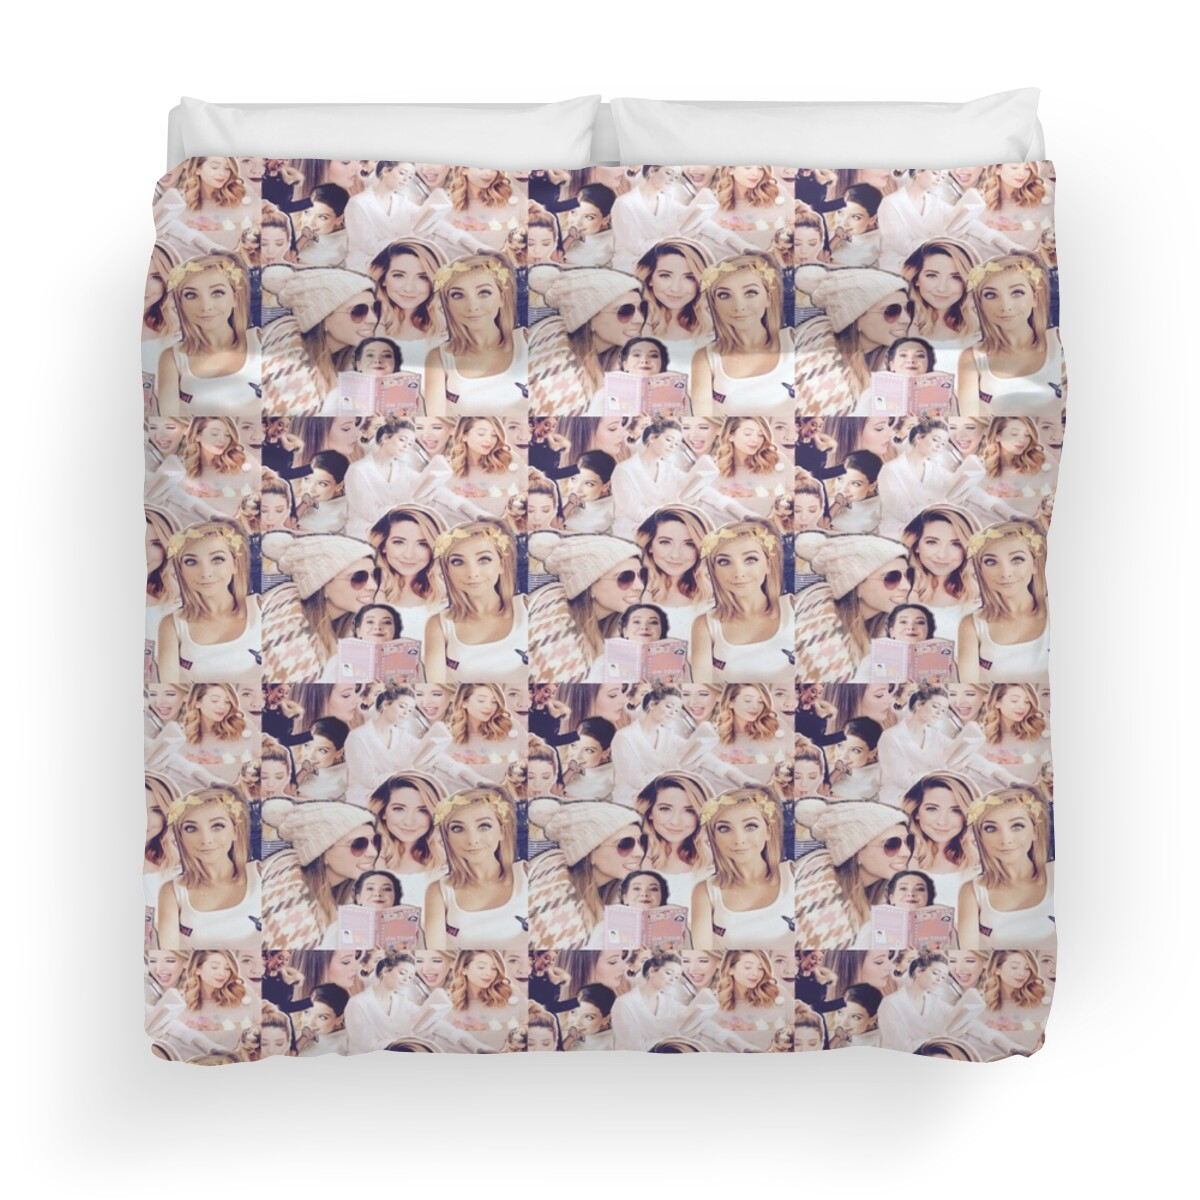 Zoella Throw Pillows : Zoella: Duvet Covers Redbubble